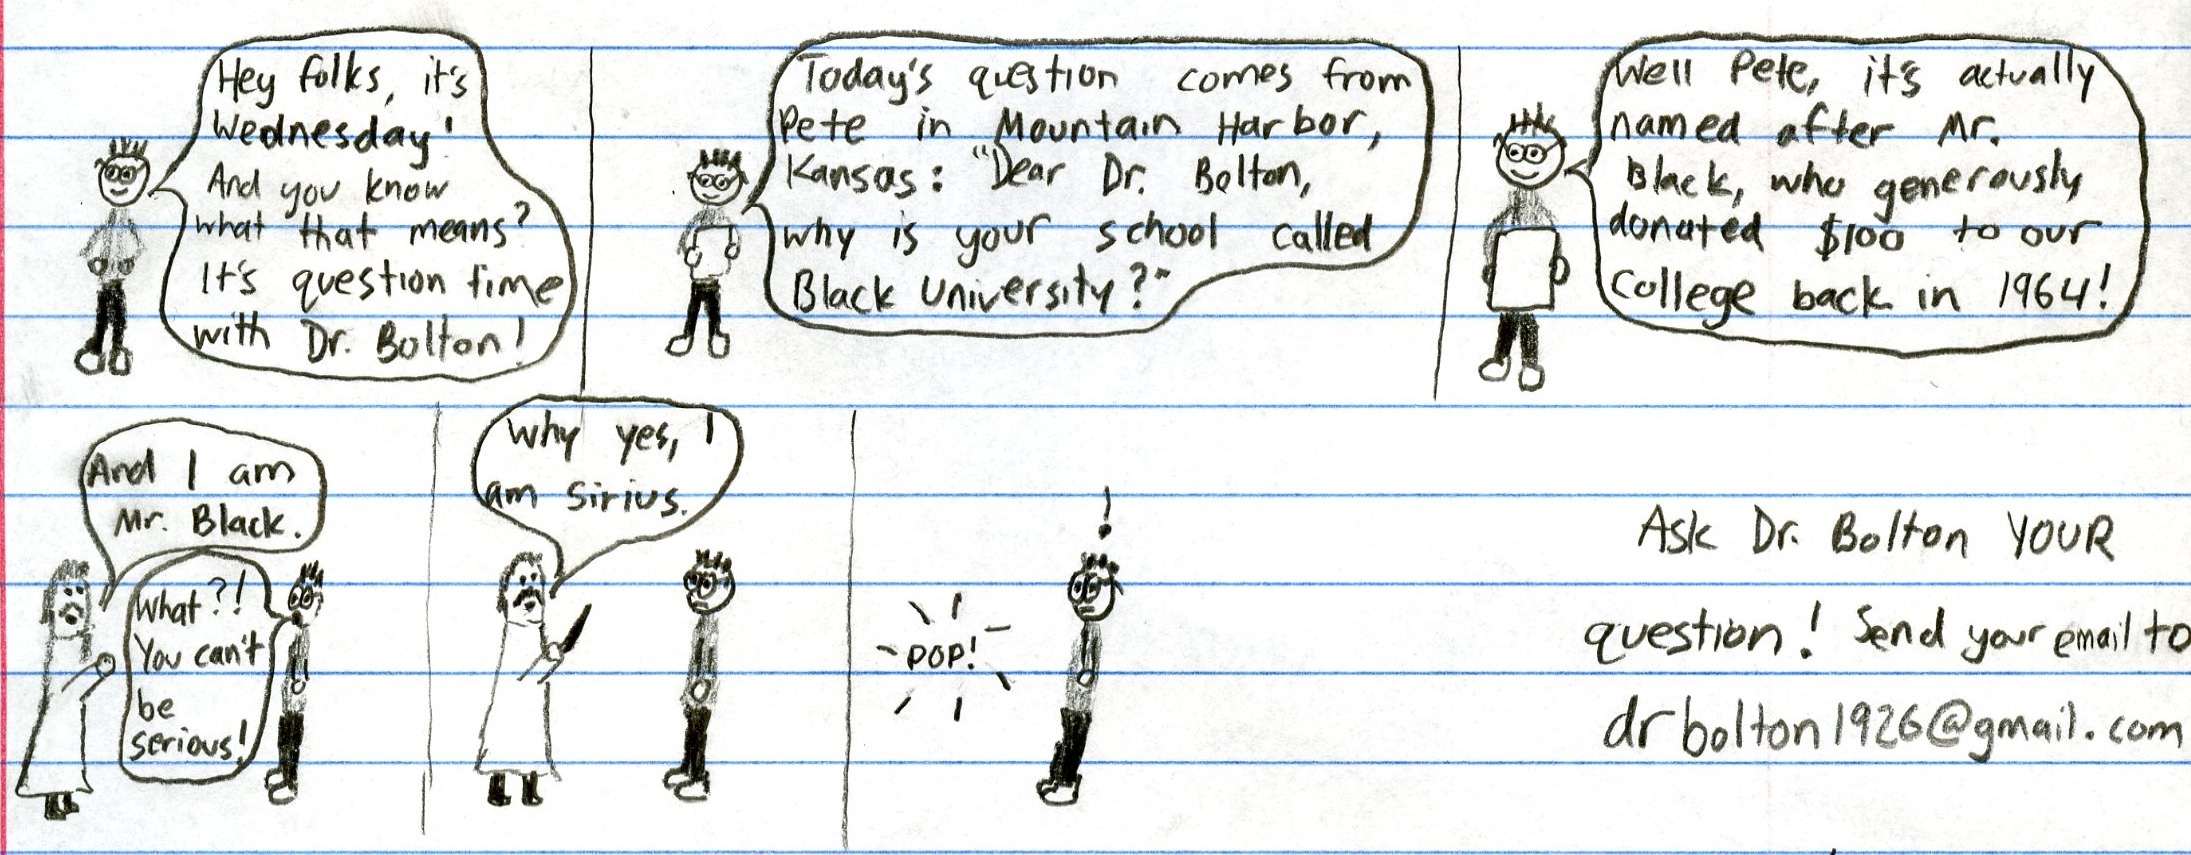 Ask Dr. Bolton